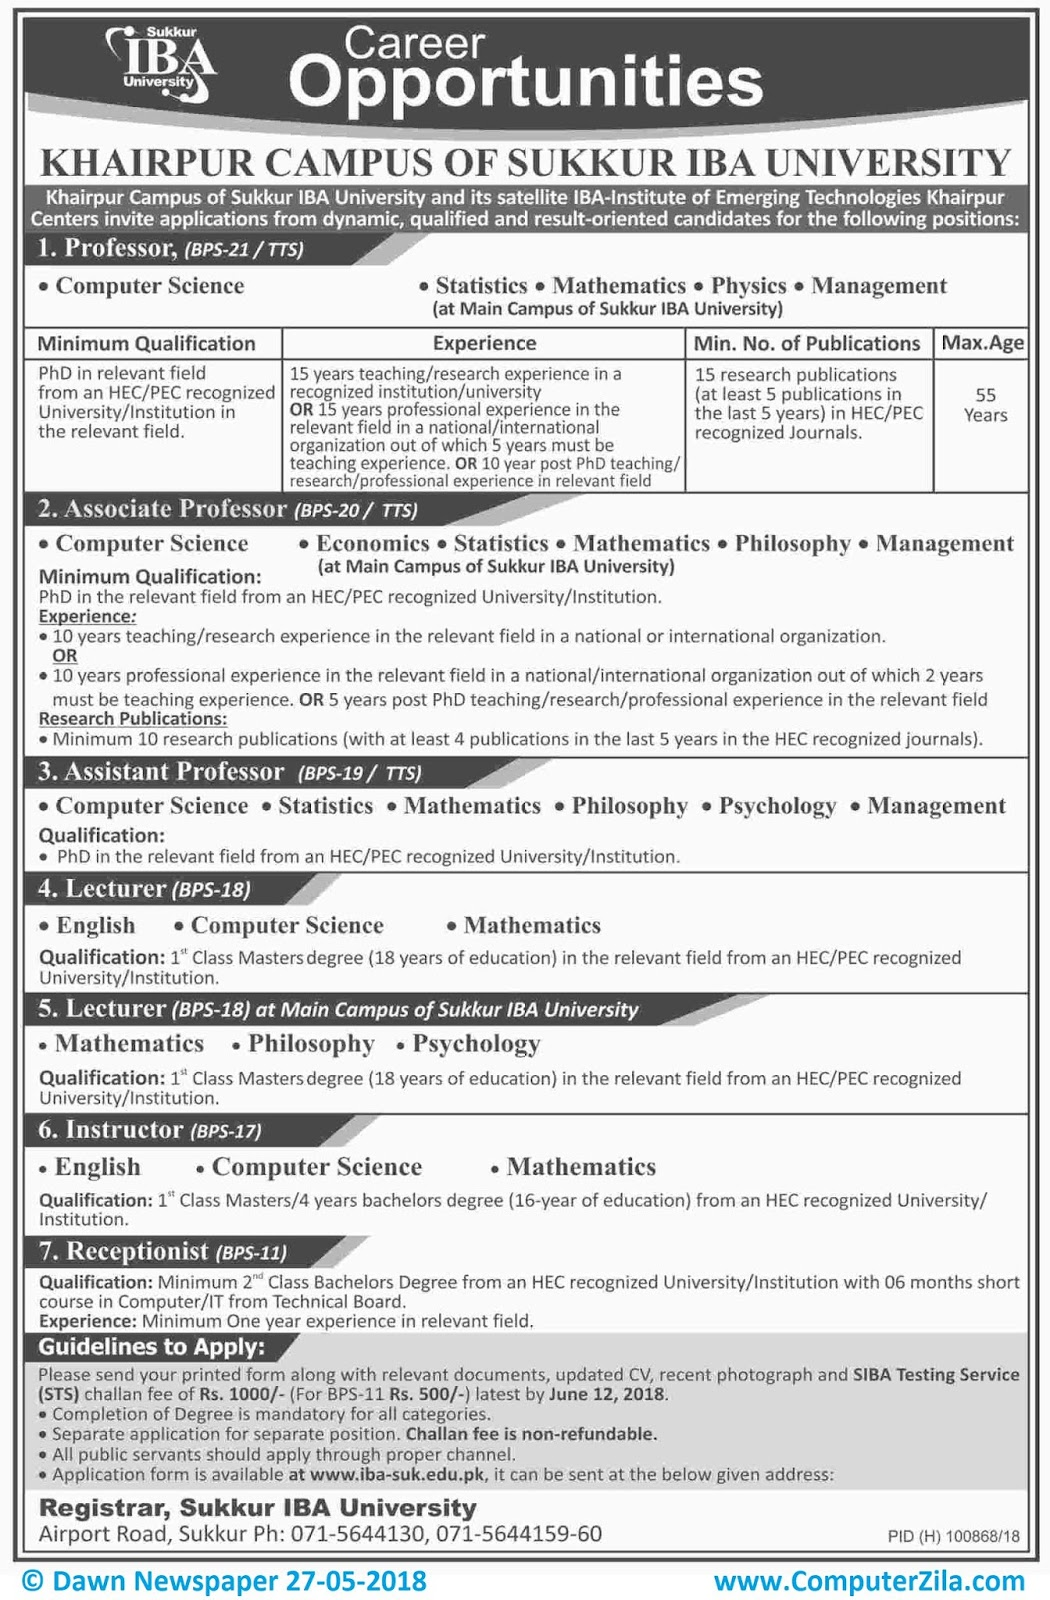 Career Oppurtunities at Sukkur IBA University